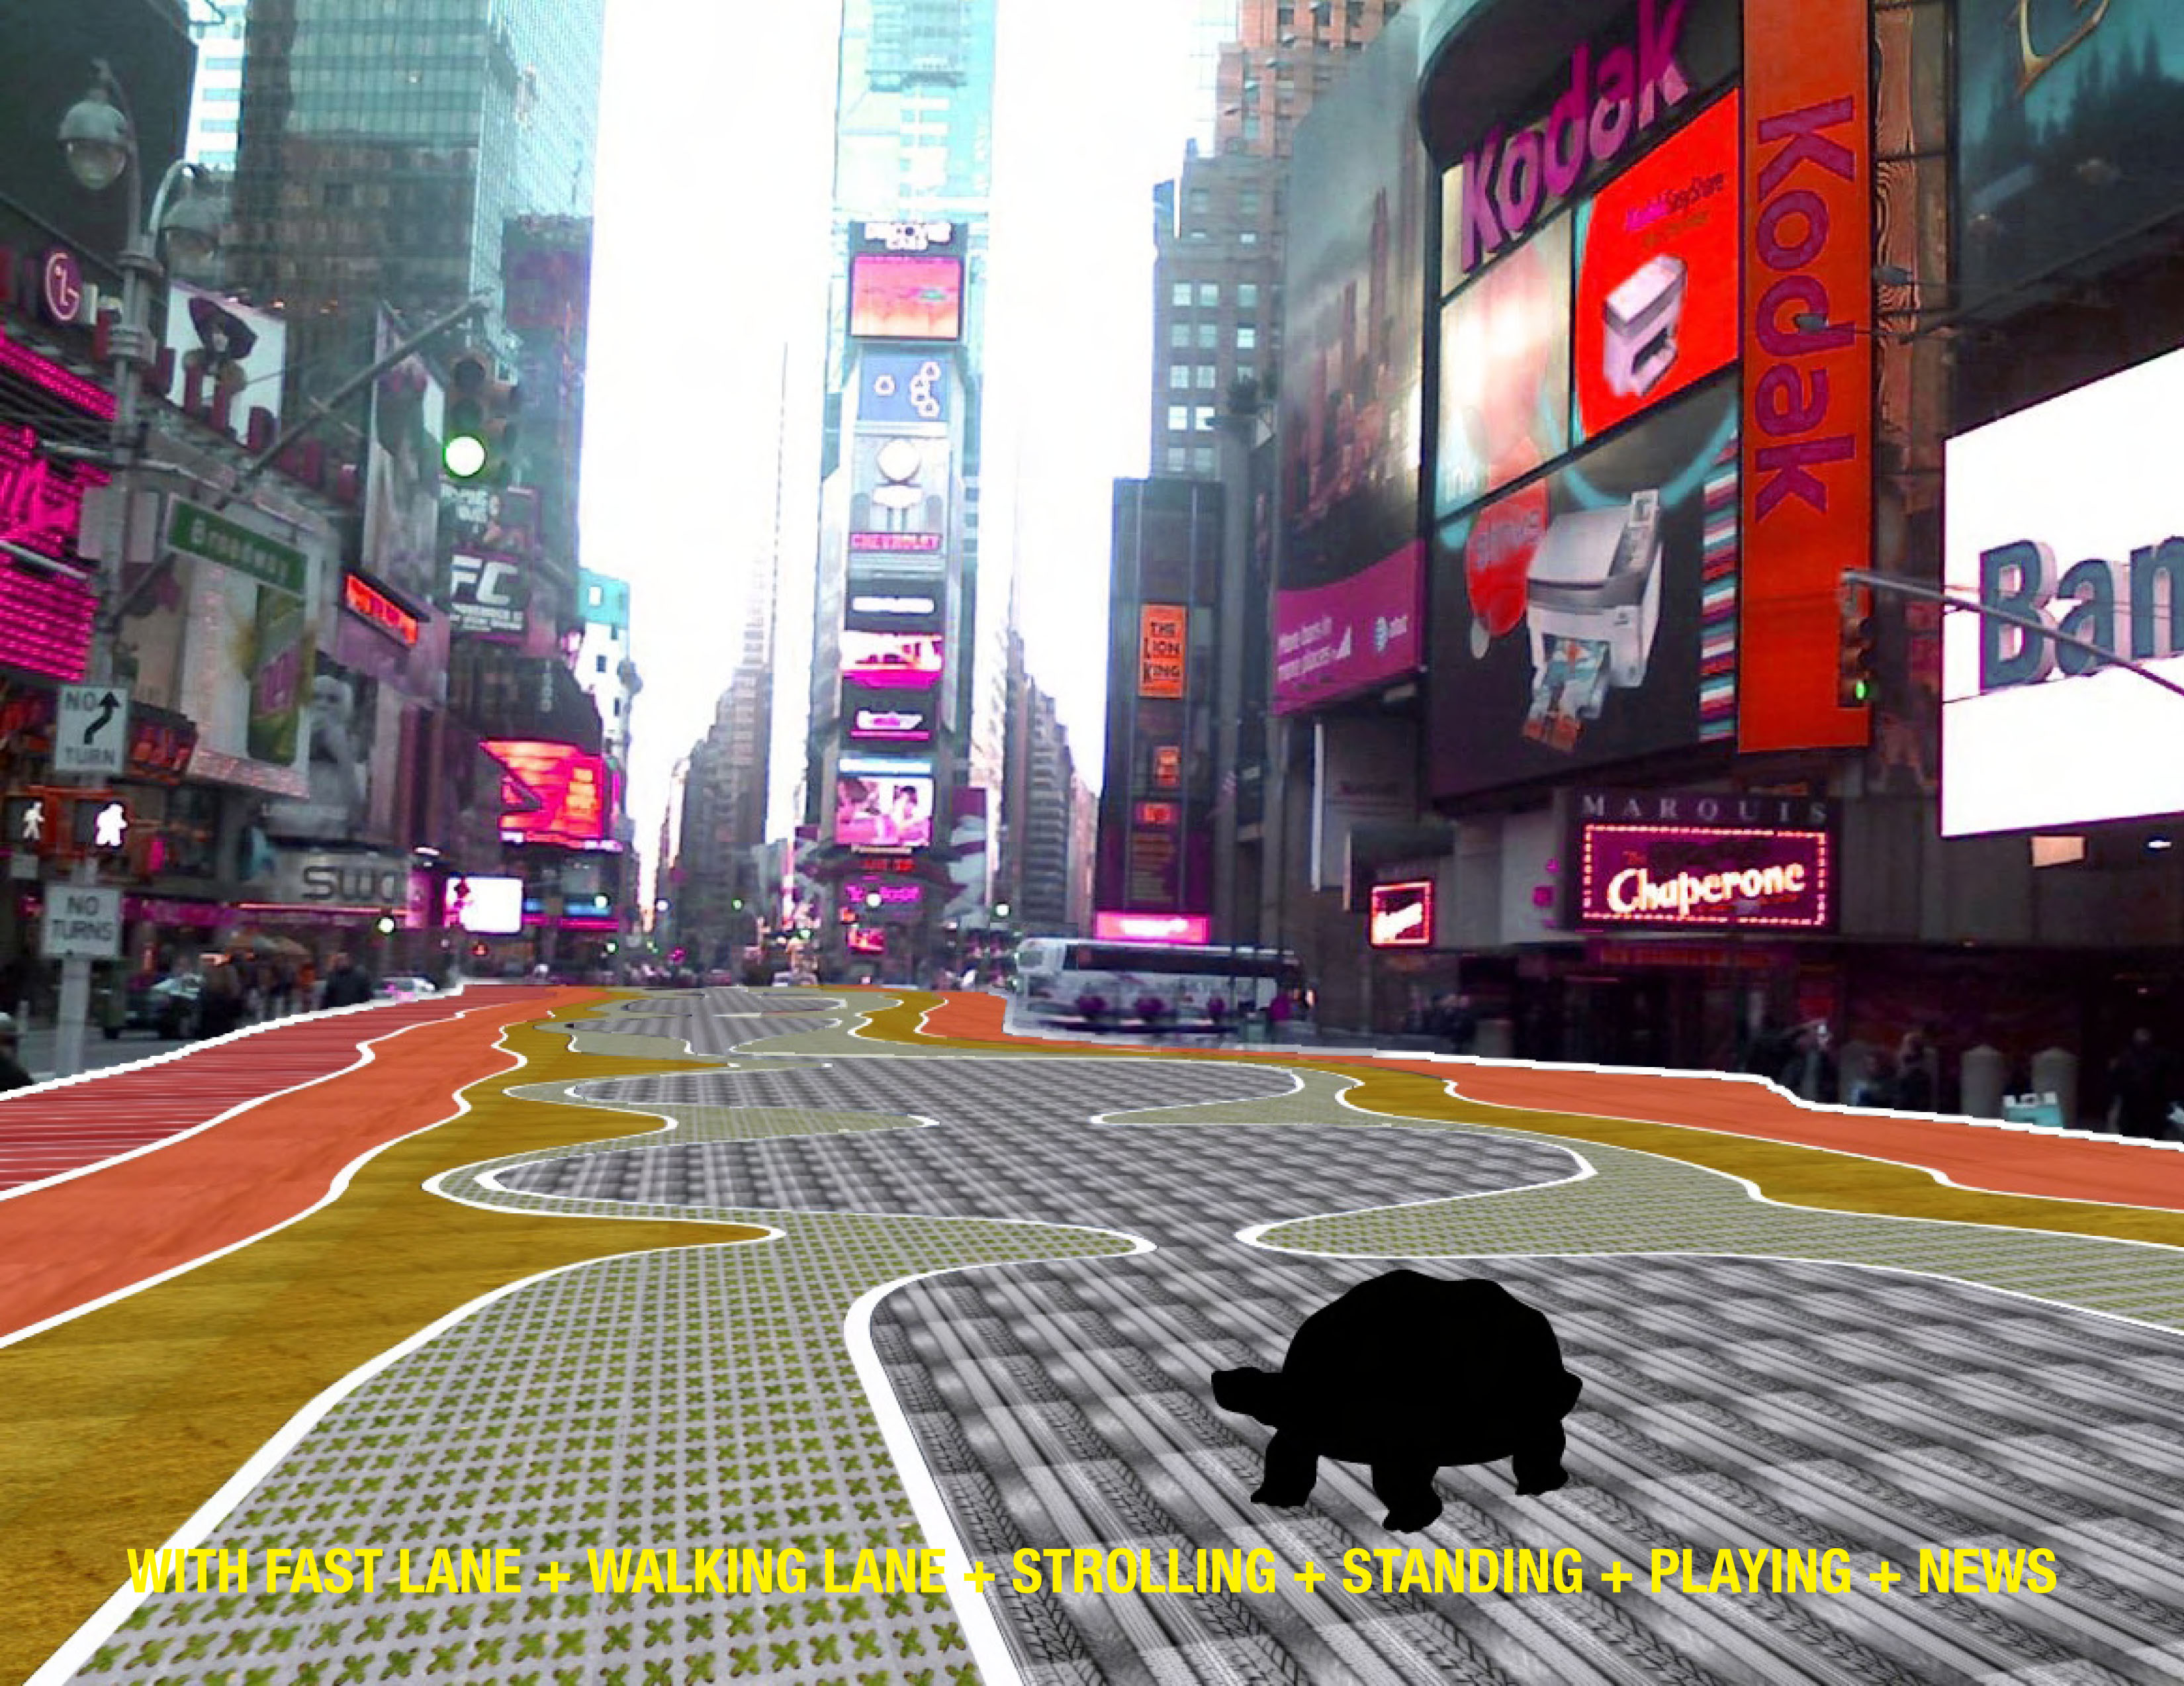 Time_Square_09